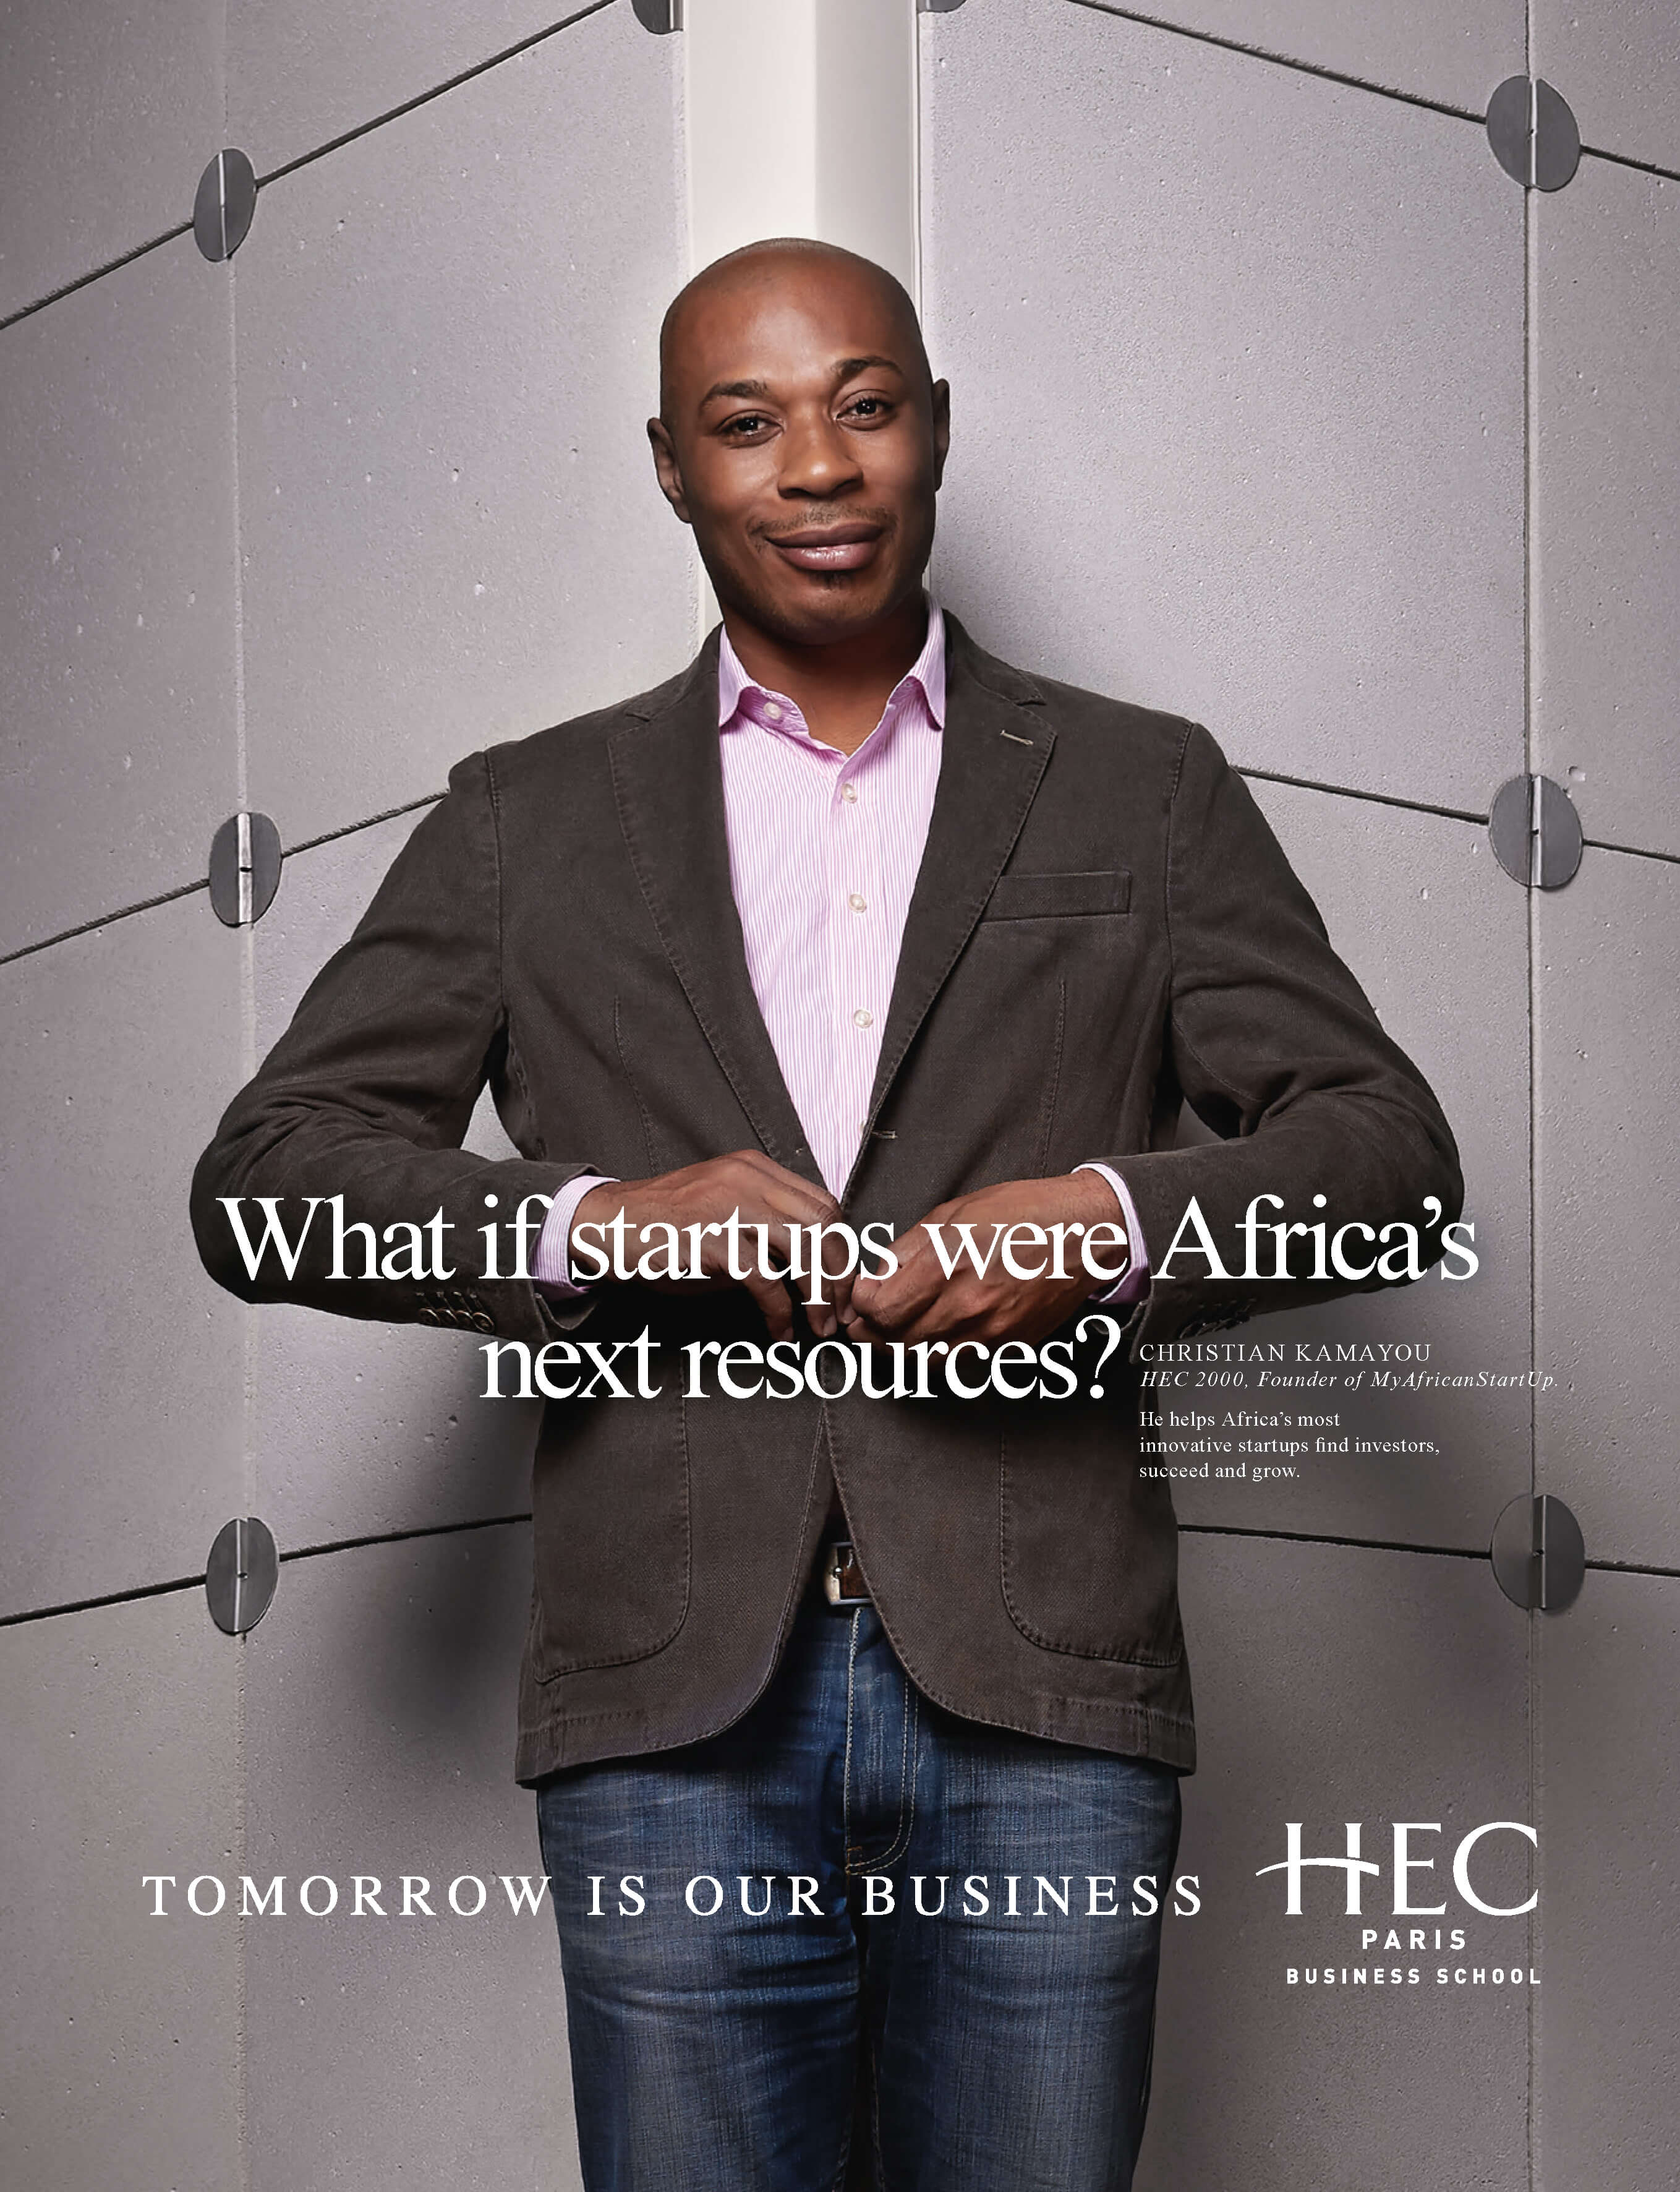 What if startups were Africa's next resources?